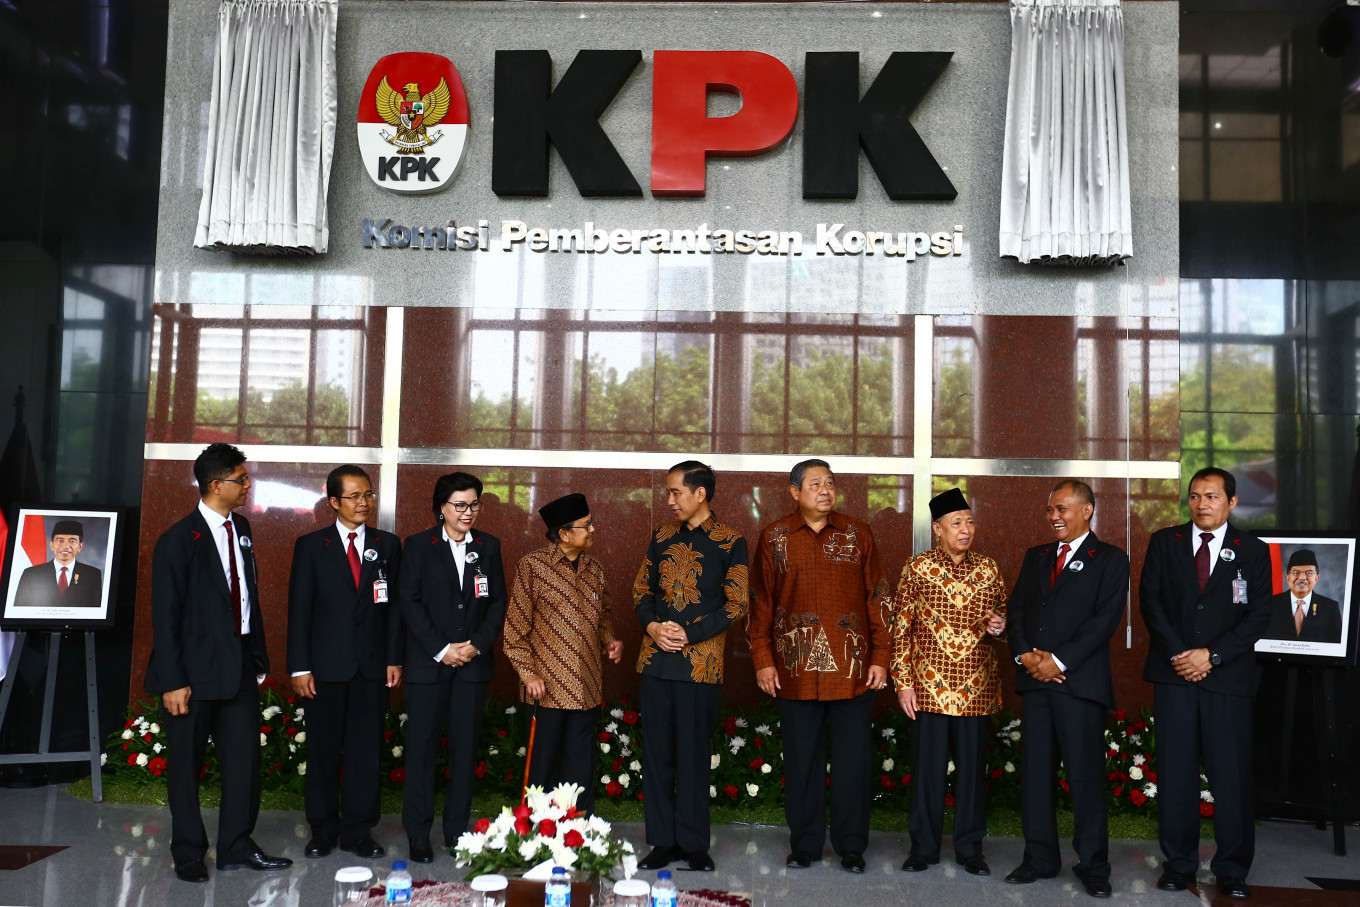 "President Joko ""Jokowi"" Widodo takes a picture together with former presidents Susilo Bambang Yudhoyono and BJ Habibie and the leaders of the Corruption Eradication Commission (KPK) when attending the inauguration of the KPK's new building in Jakarta on December 29, 2015. The launch was in conjunction with the KPK's 12th anniversary. JP/Wienda Parwitasari"